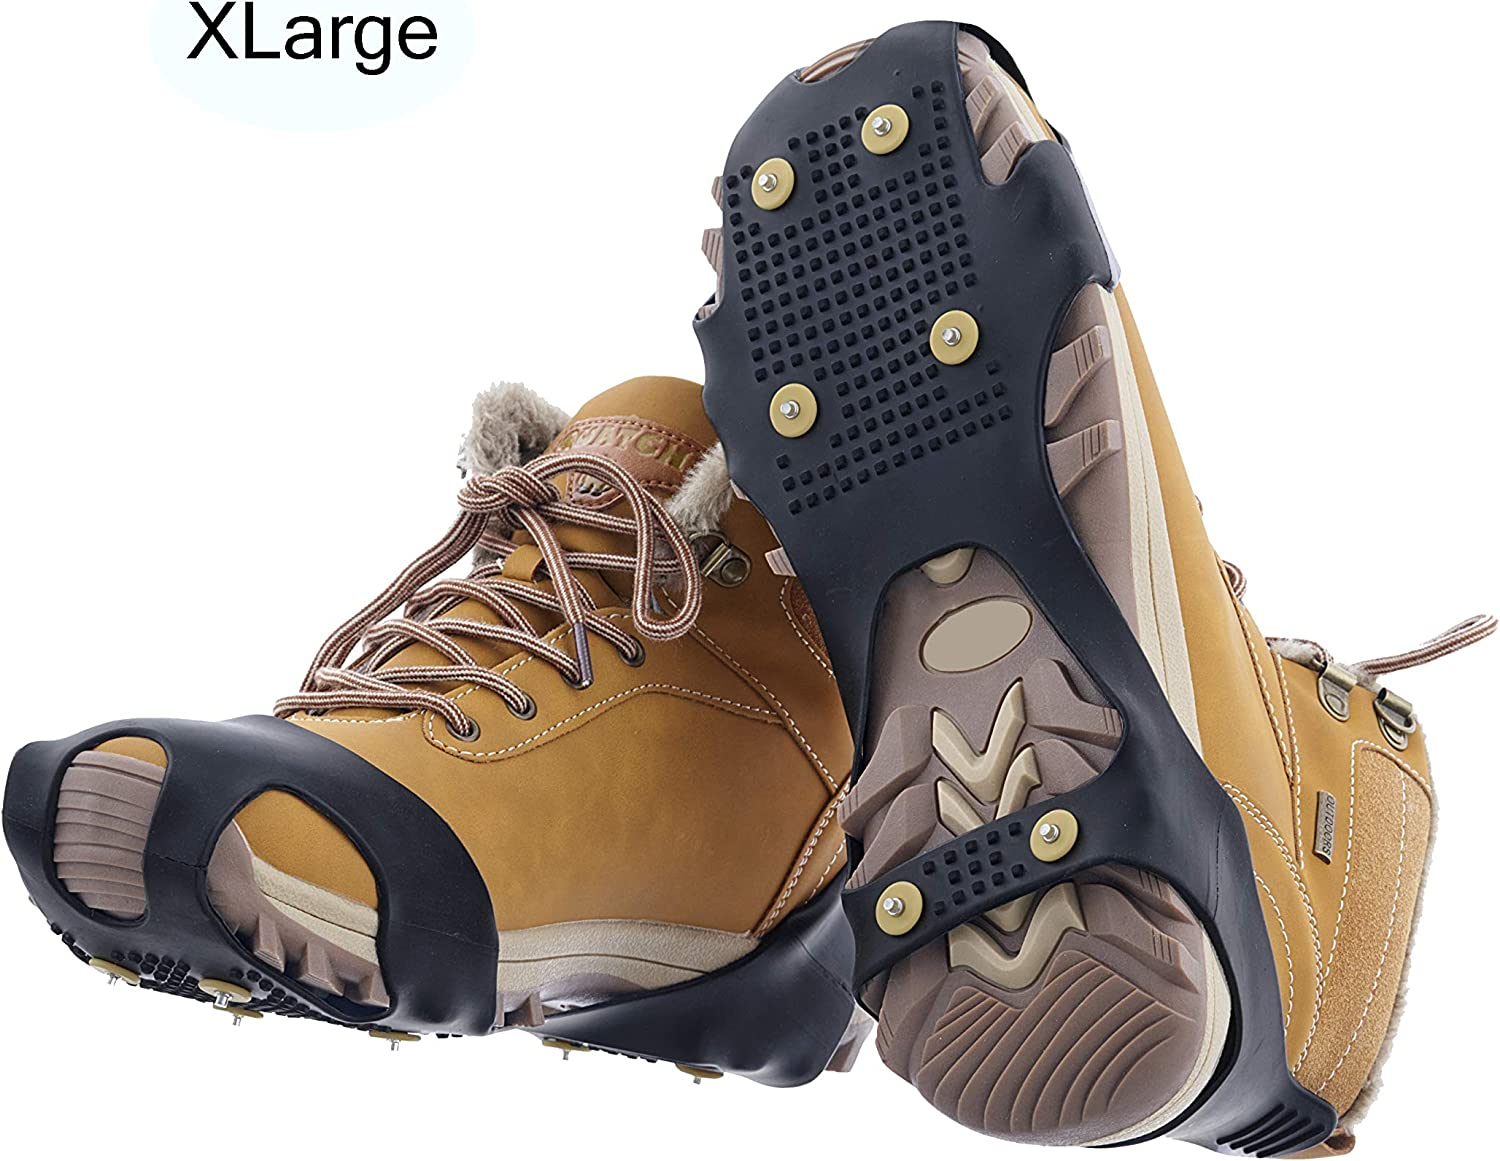 6 Anti-Slip Studs Protection Hike or Walk Traction Cleat Rubber Spikes Superio Snow Ice Cleats Snow Grips Shoe and Boot Cleats Easy Slip-On Grip Rubber Ice Snow Mud Teeth Cleats